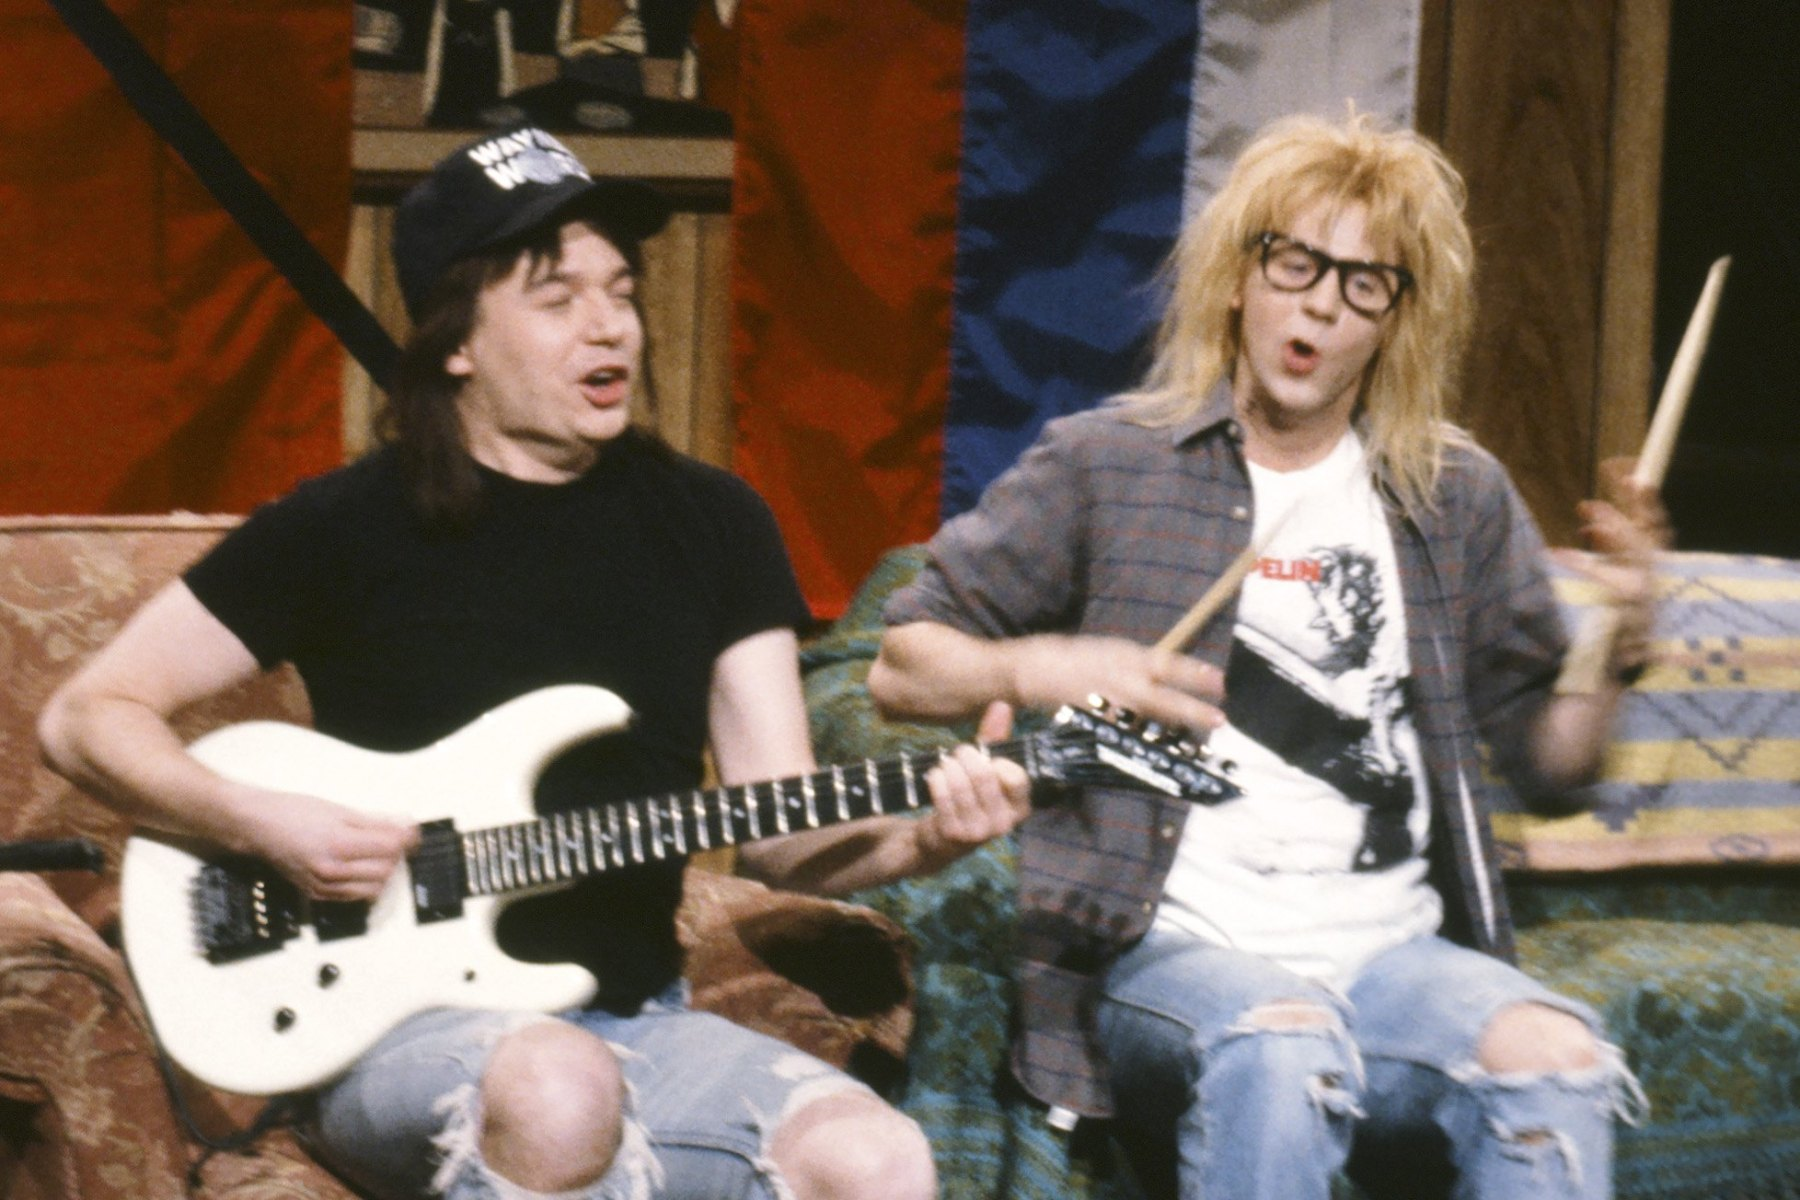 Wayne's World': 10 Things You Didn't Know - Rolling Stone